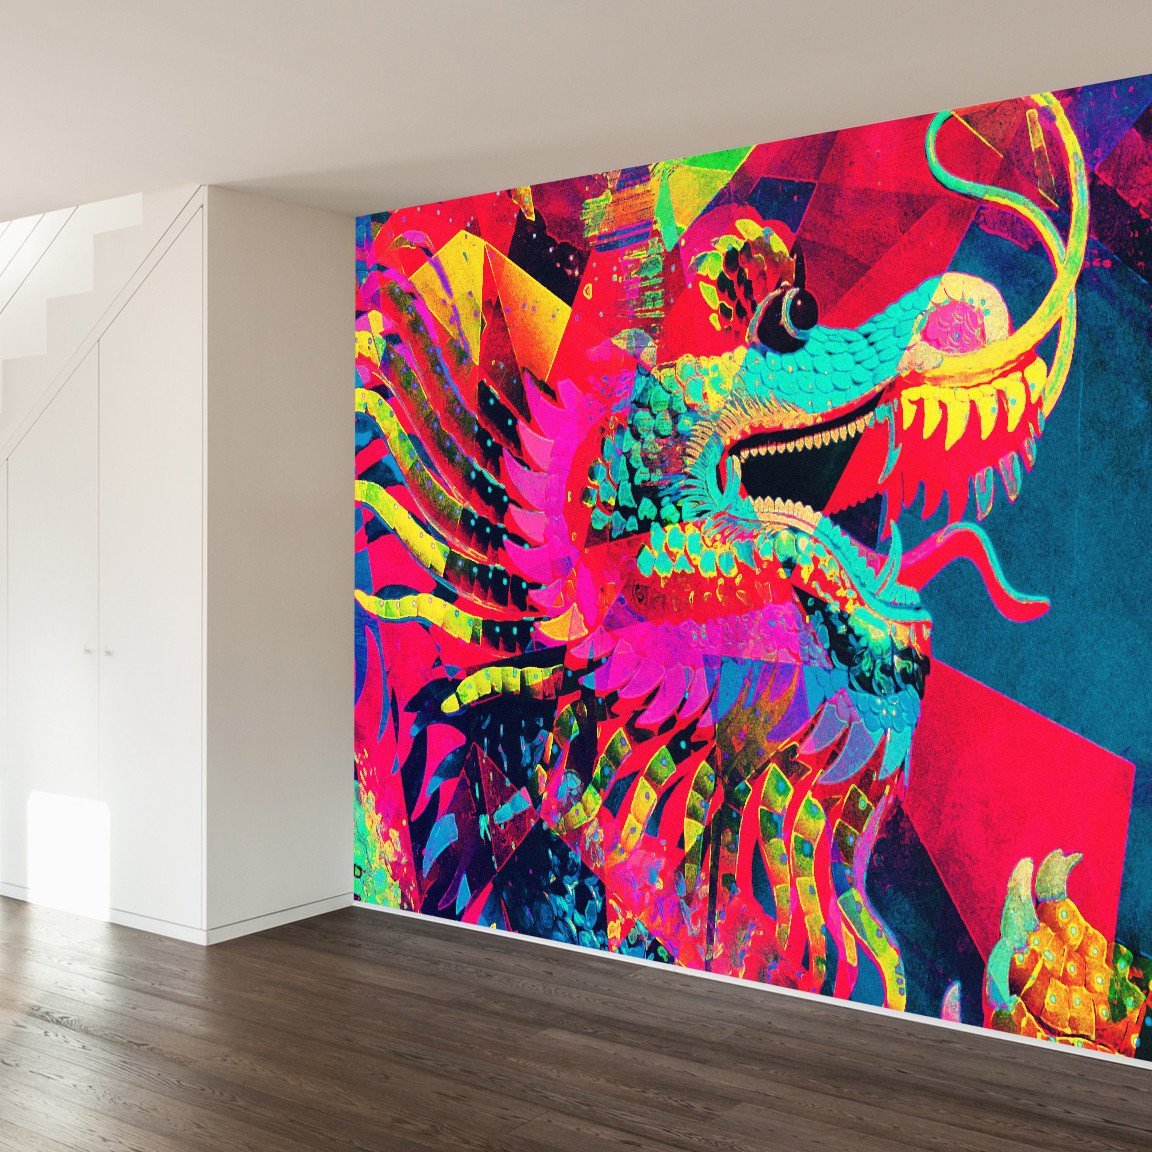 Dragon Wall Mural Wall murals, Art furniture, Wall murials